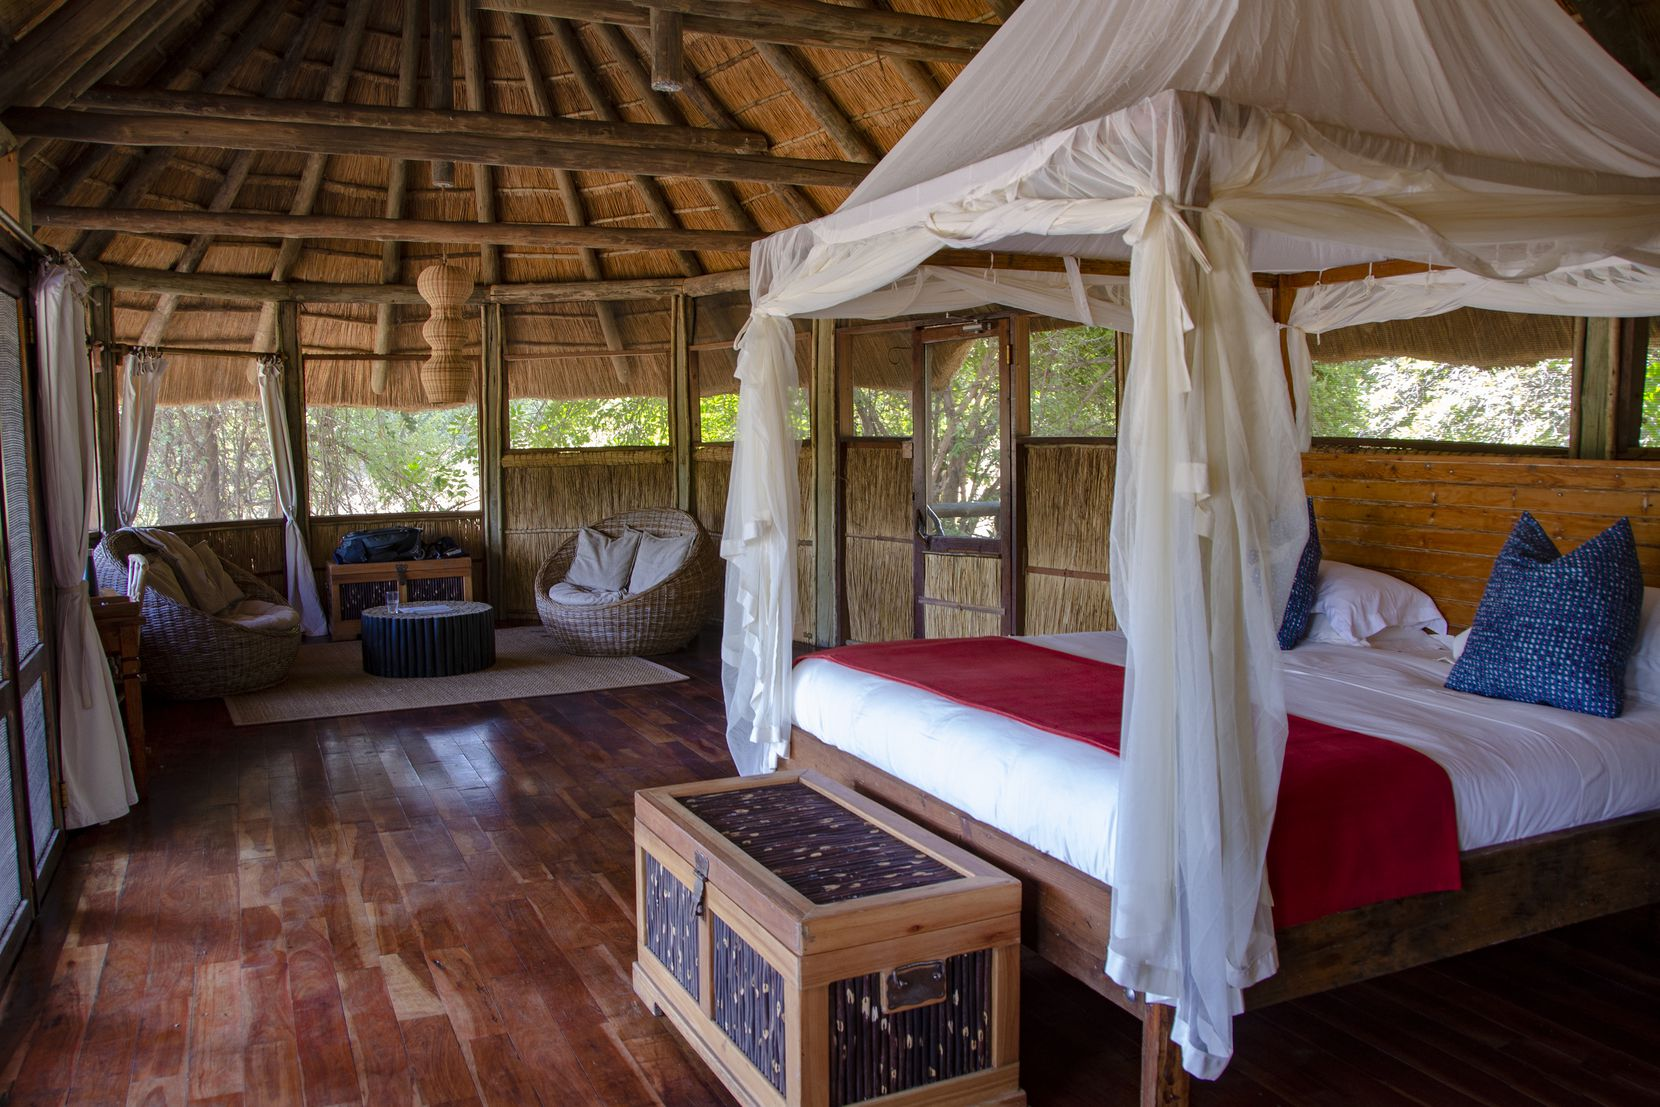 The Bushcamp Co.'s accommodations in Zambia's South Luangwa National Park are rustic and luxurious.